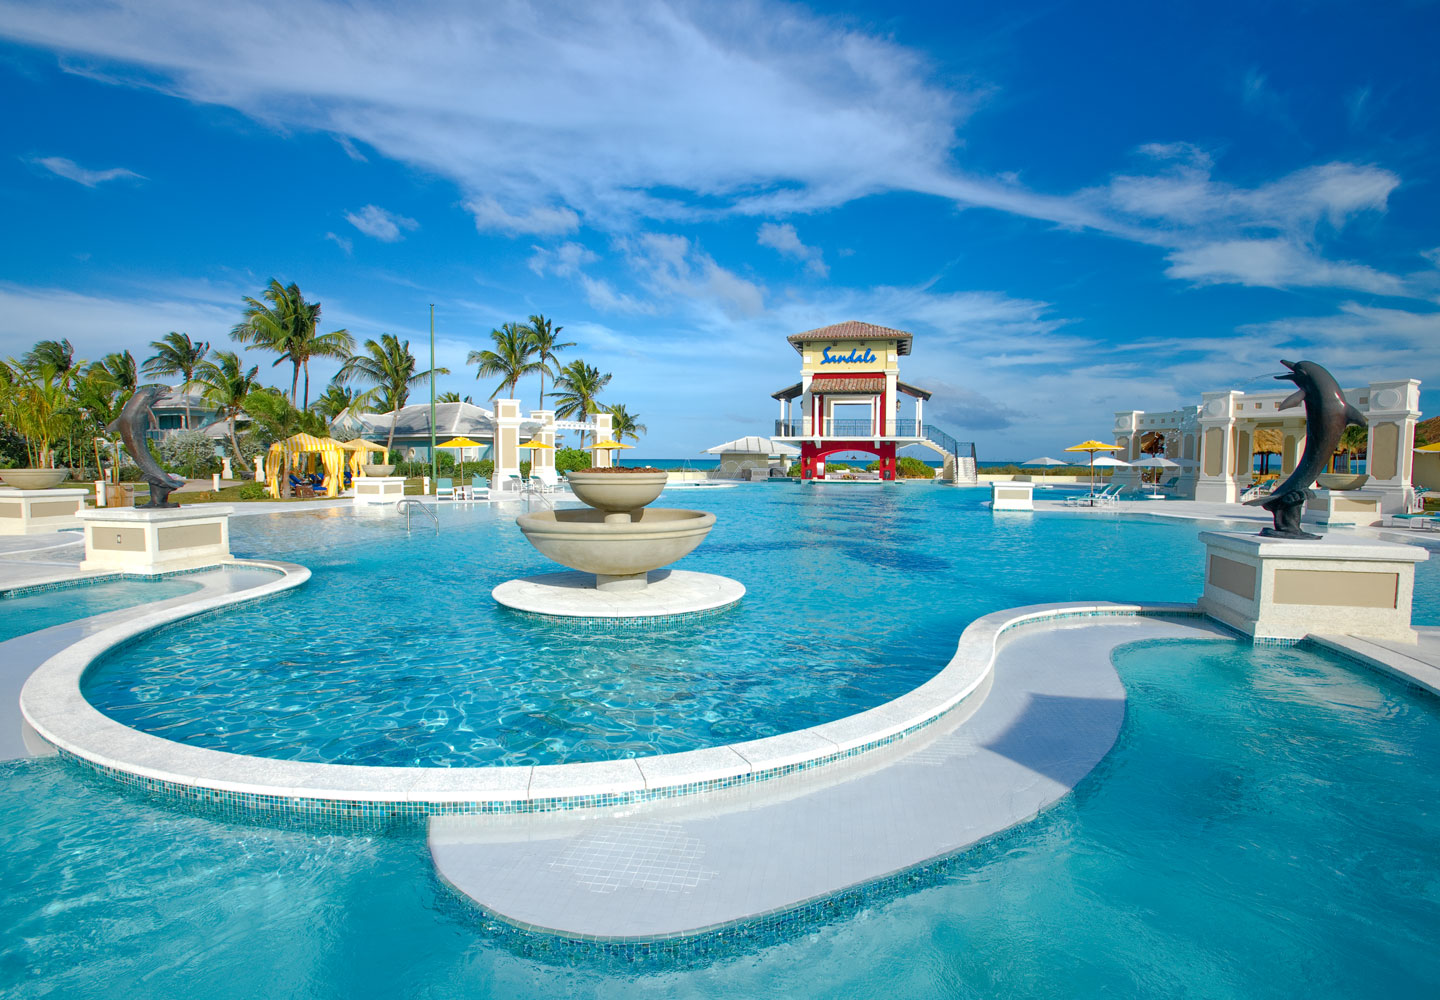 Sandals Emerald Bay - Great Exuma- The Bahamas